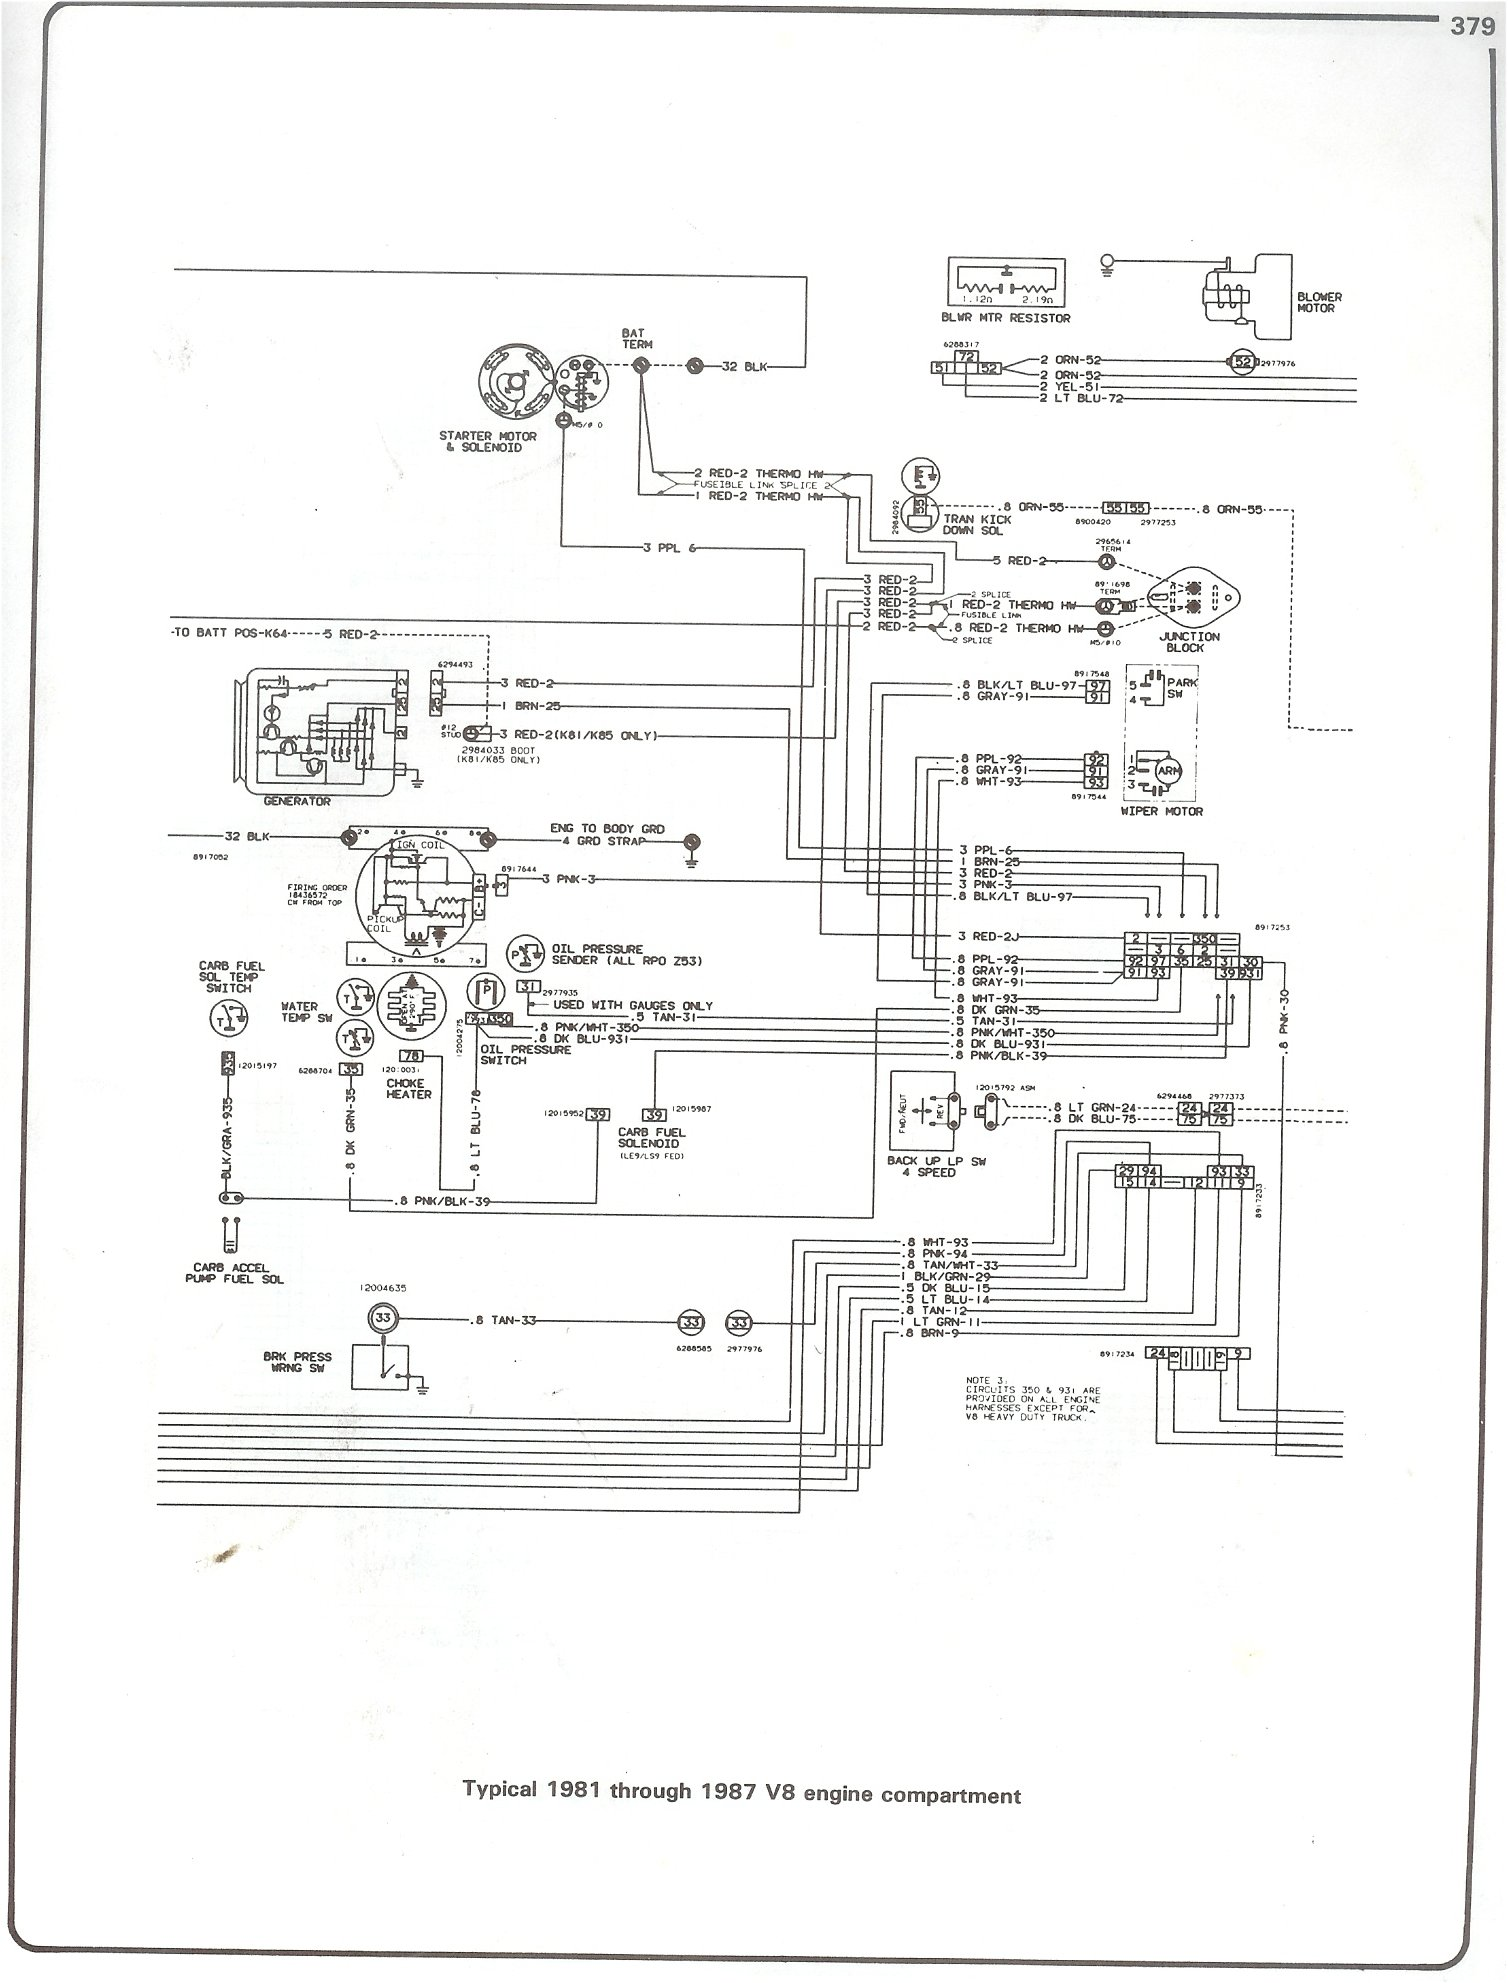 system parts diagram on wiring diagram 87 chevy pickup 350 5 7 rh linxglobal co Chevy Wiring Harness Diagram Chevy Wiring Harness Diagram